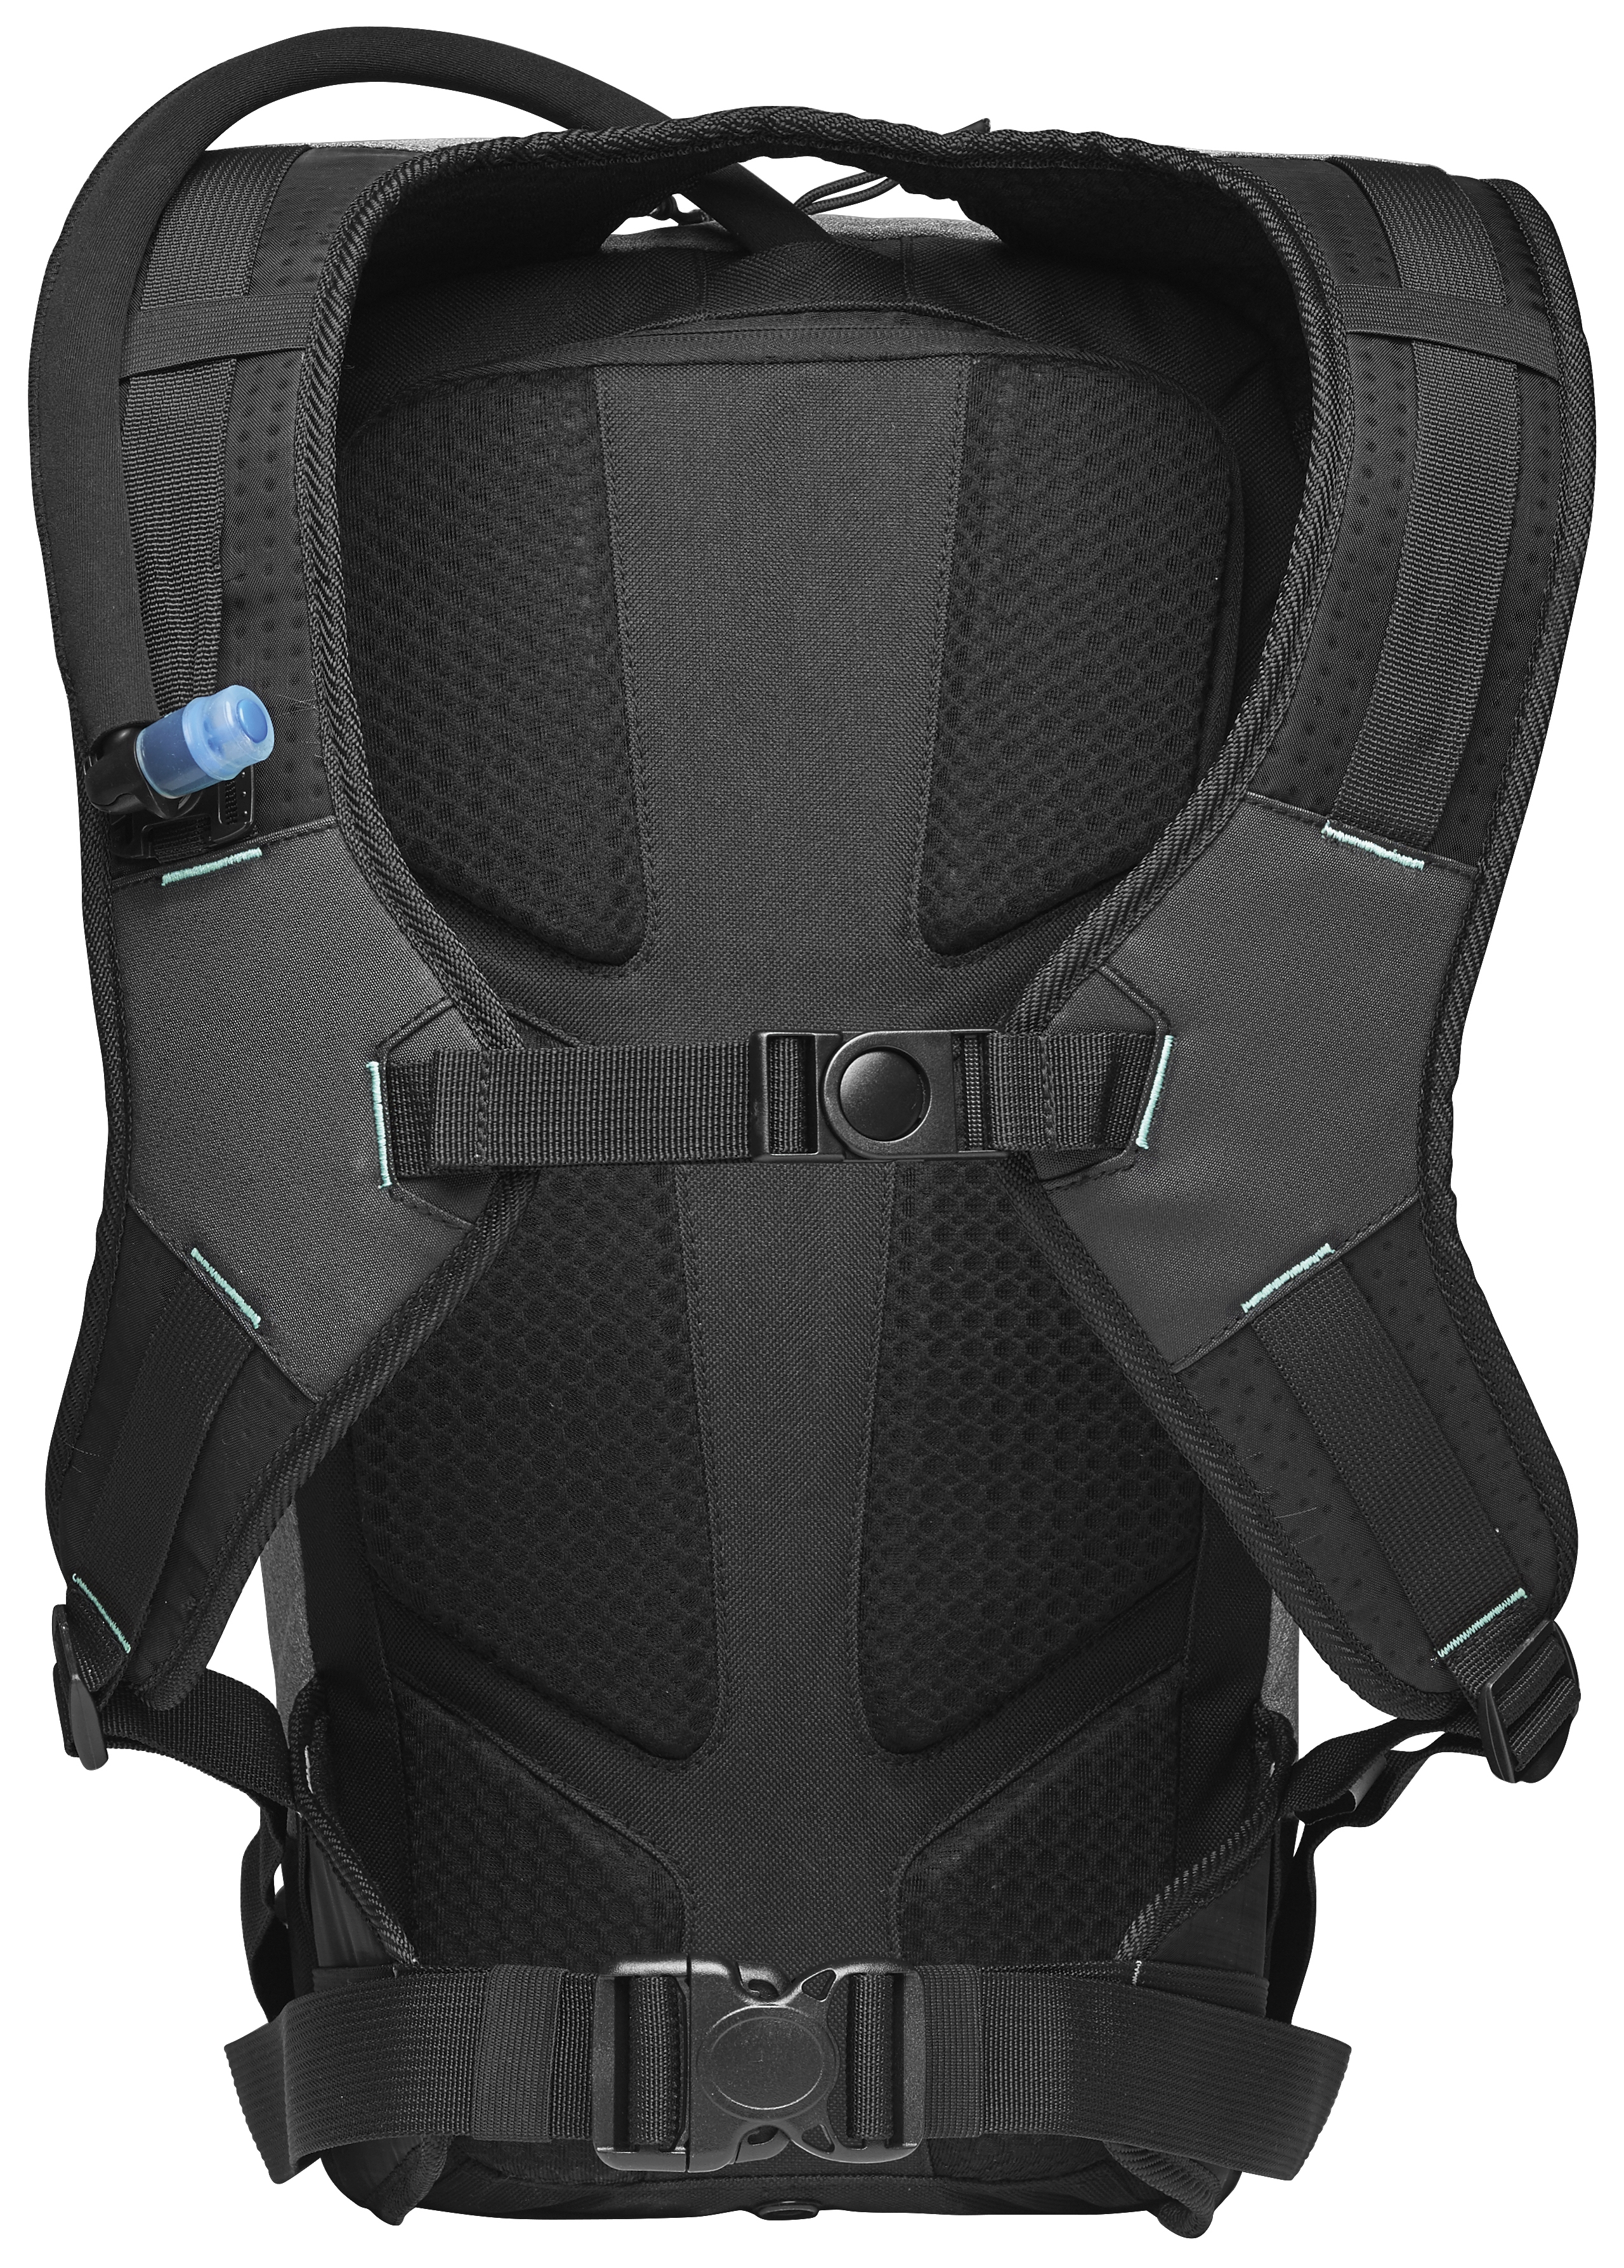 Thor NEW Mx Hydrant Reservoir Motocross Replacement 3L Hydration Pack Bladder